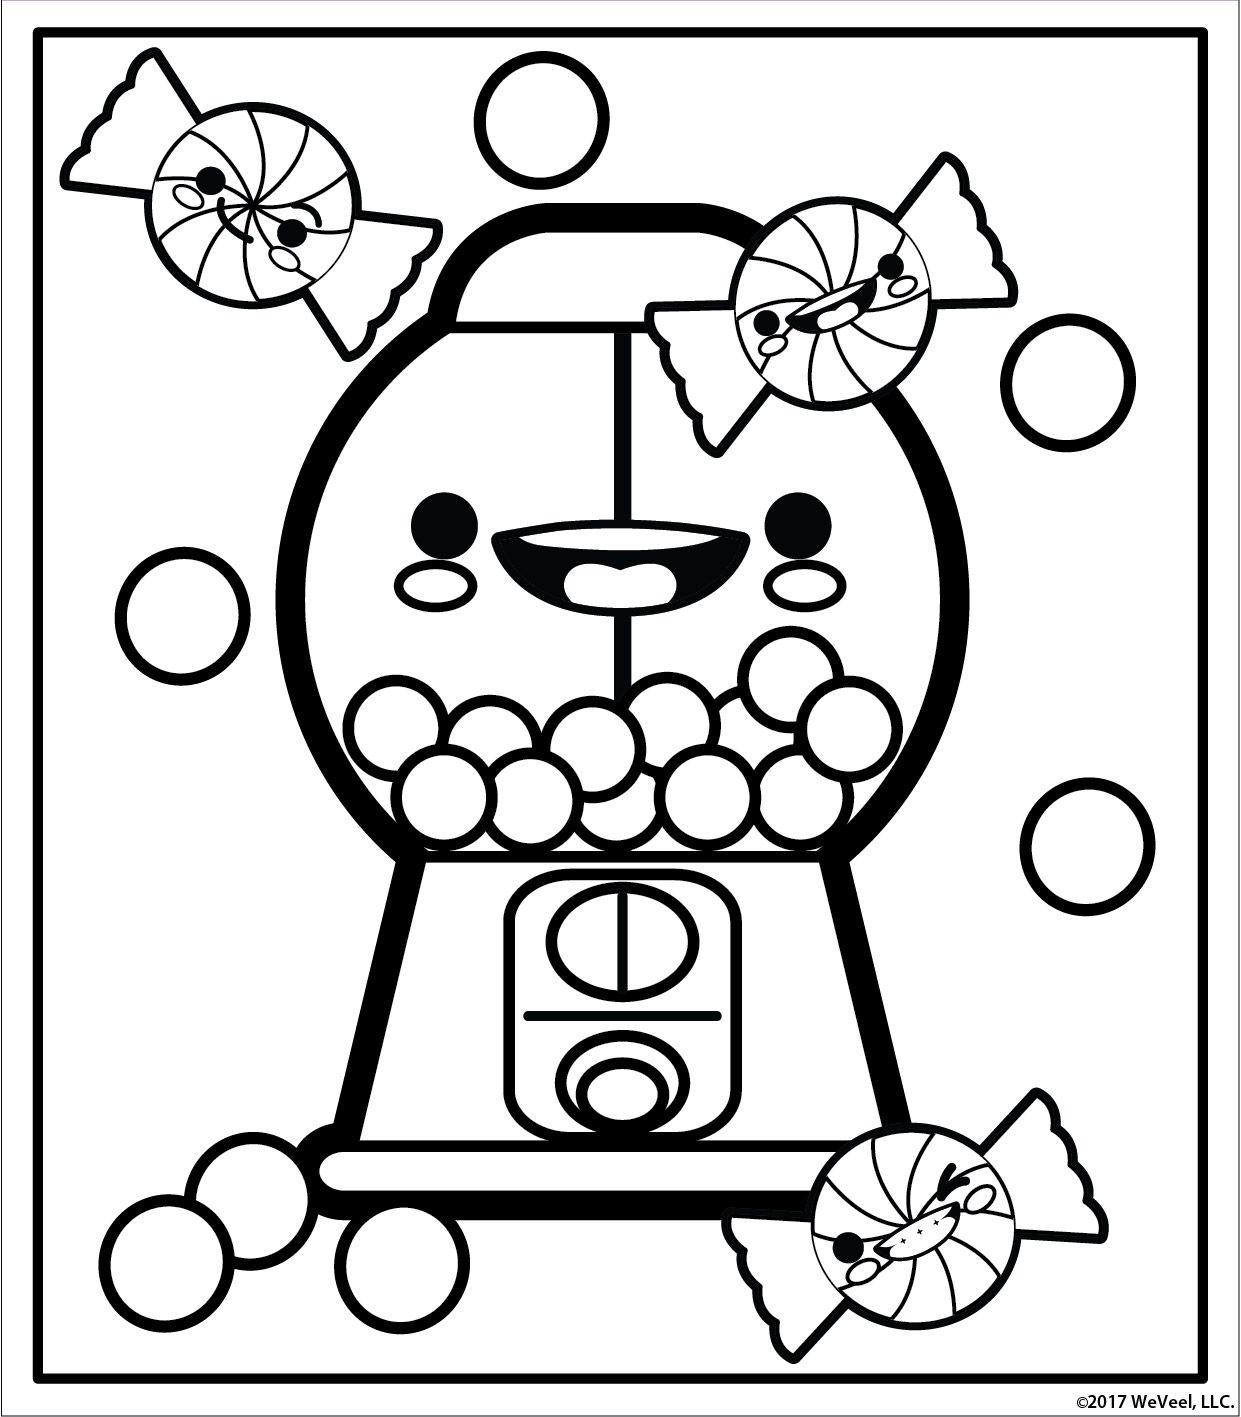 Free Printable Coloring Pages At Scentos Com Cute Girl Coloring Pages To Download And Print Spring Coloring Pages Candy Coloring Pages Free Kids Coloring Pages